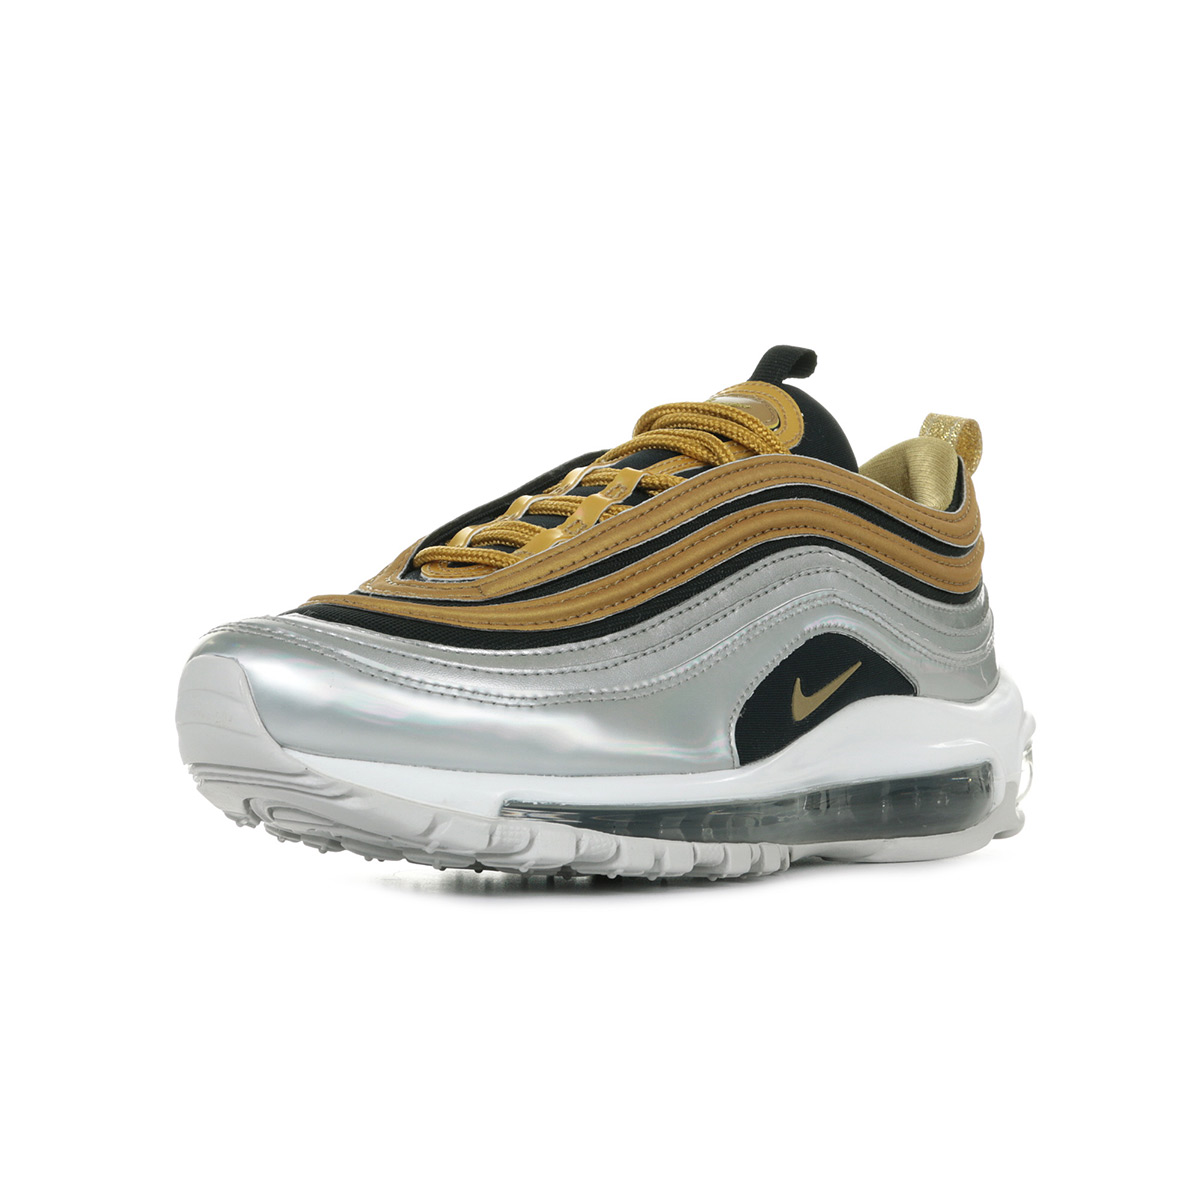 Nike Wn's Air Max 97 SE AQ4137700, Baskets mode femme